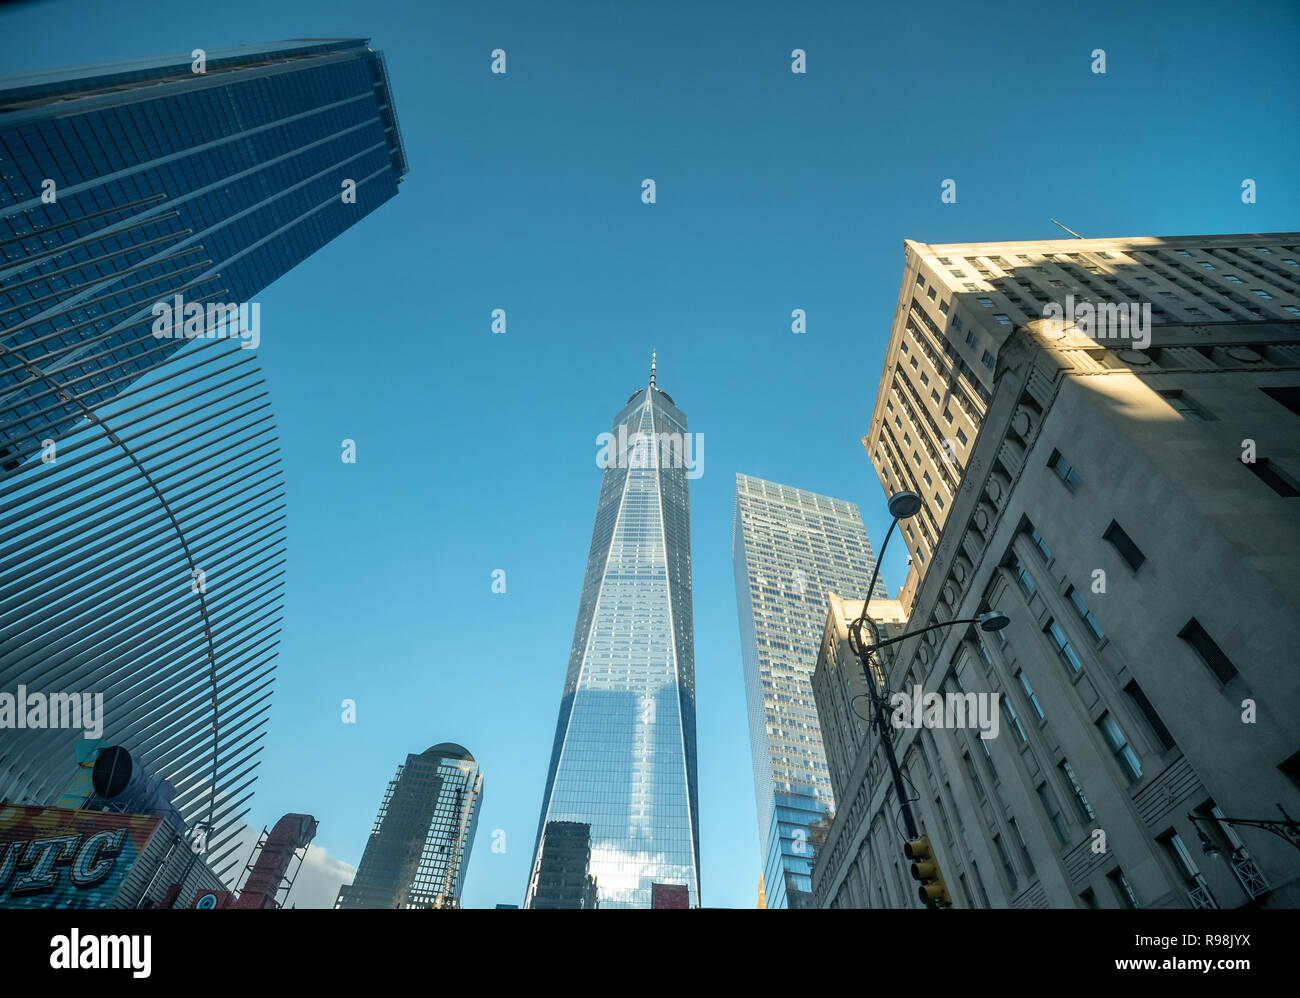 Looking Up to The World TRade Center Building In Manhattan with clear skies - Stock Image